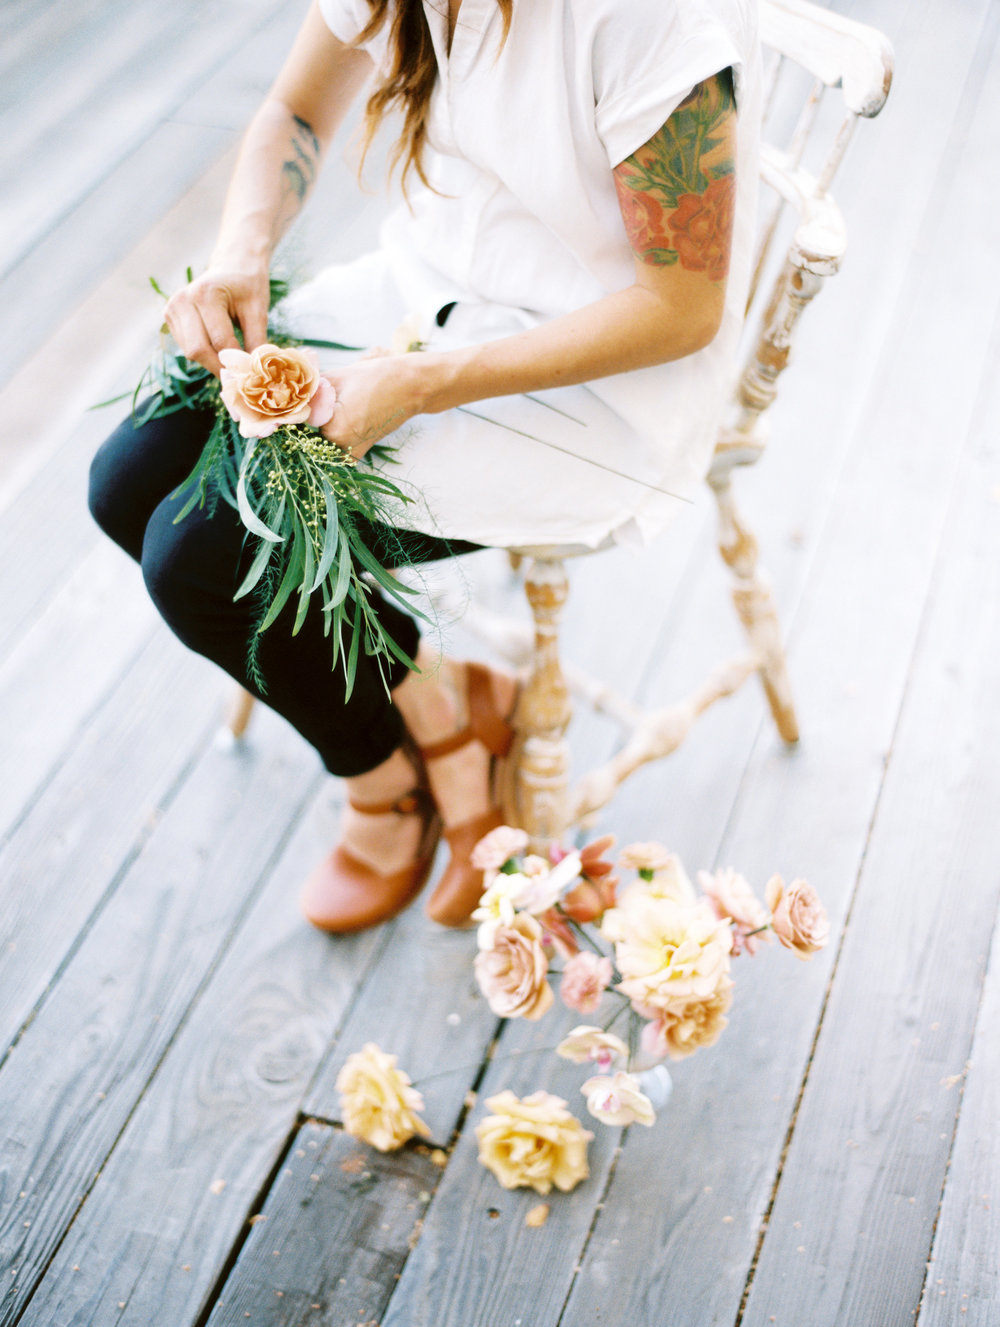 Photograph by Leo Patrone